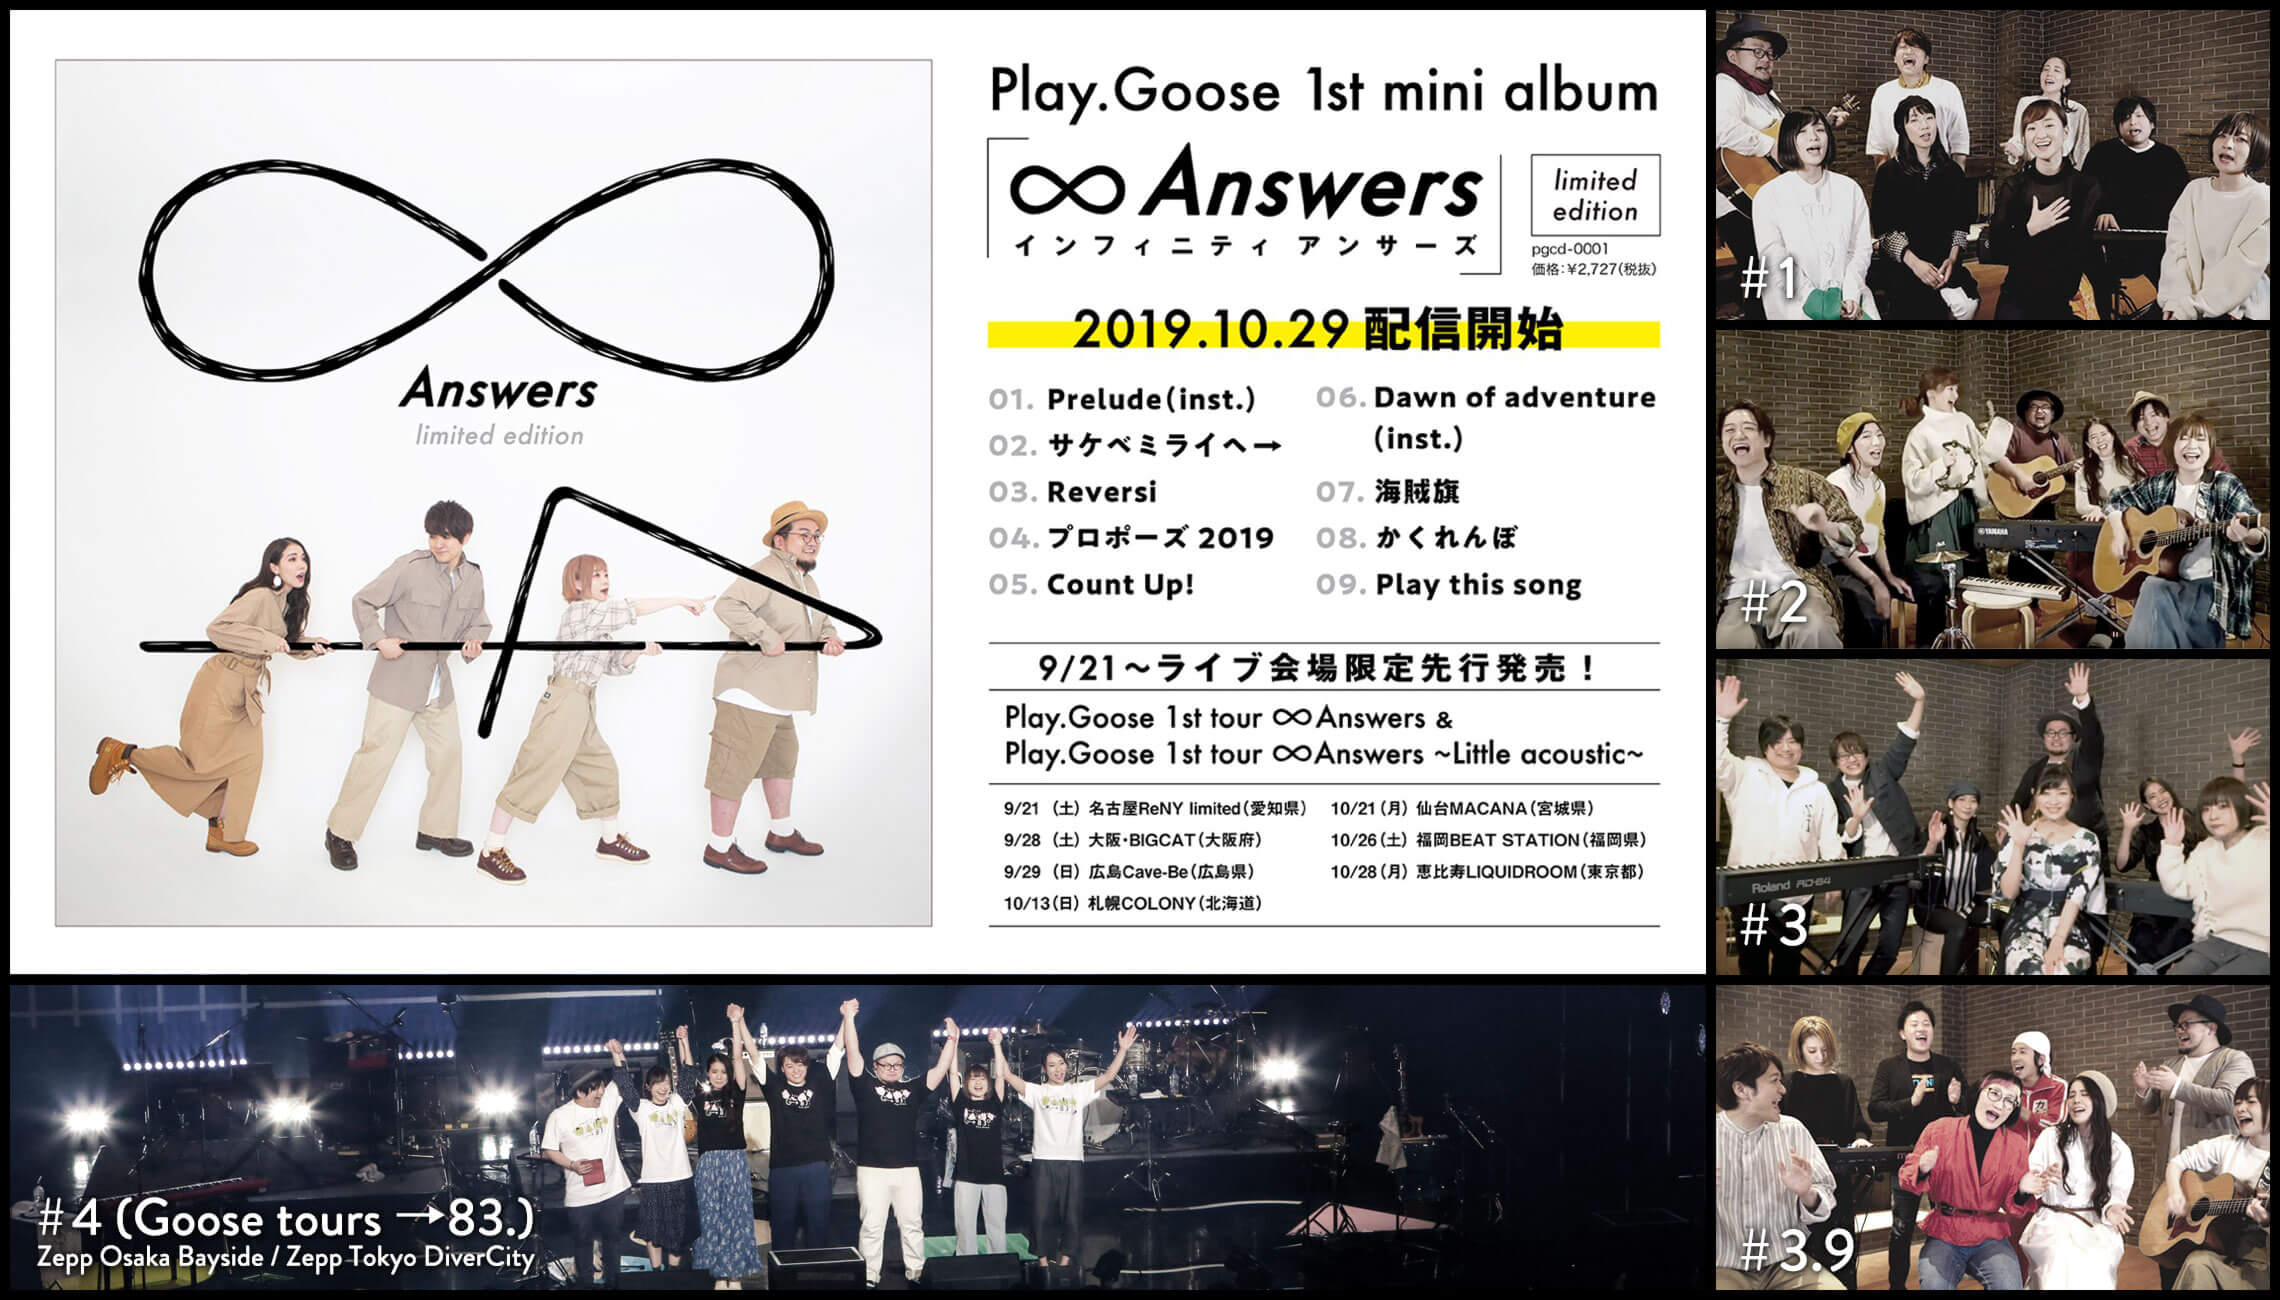 PlayGoose公式ホームページ